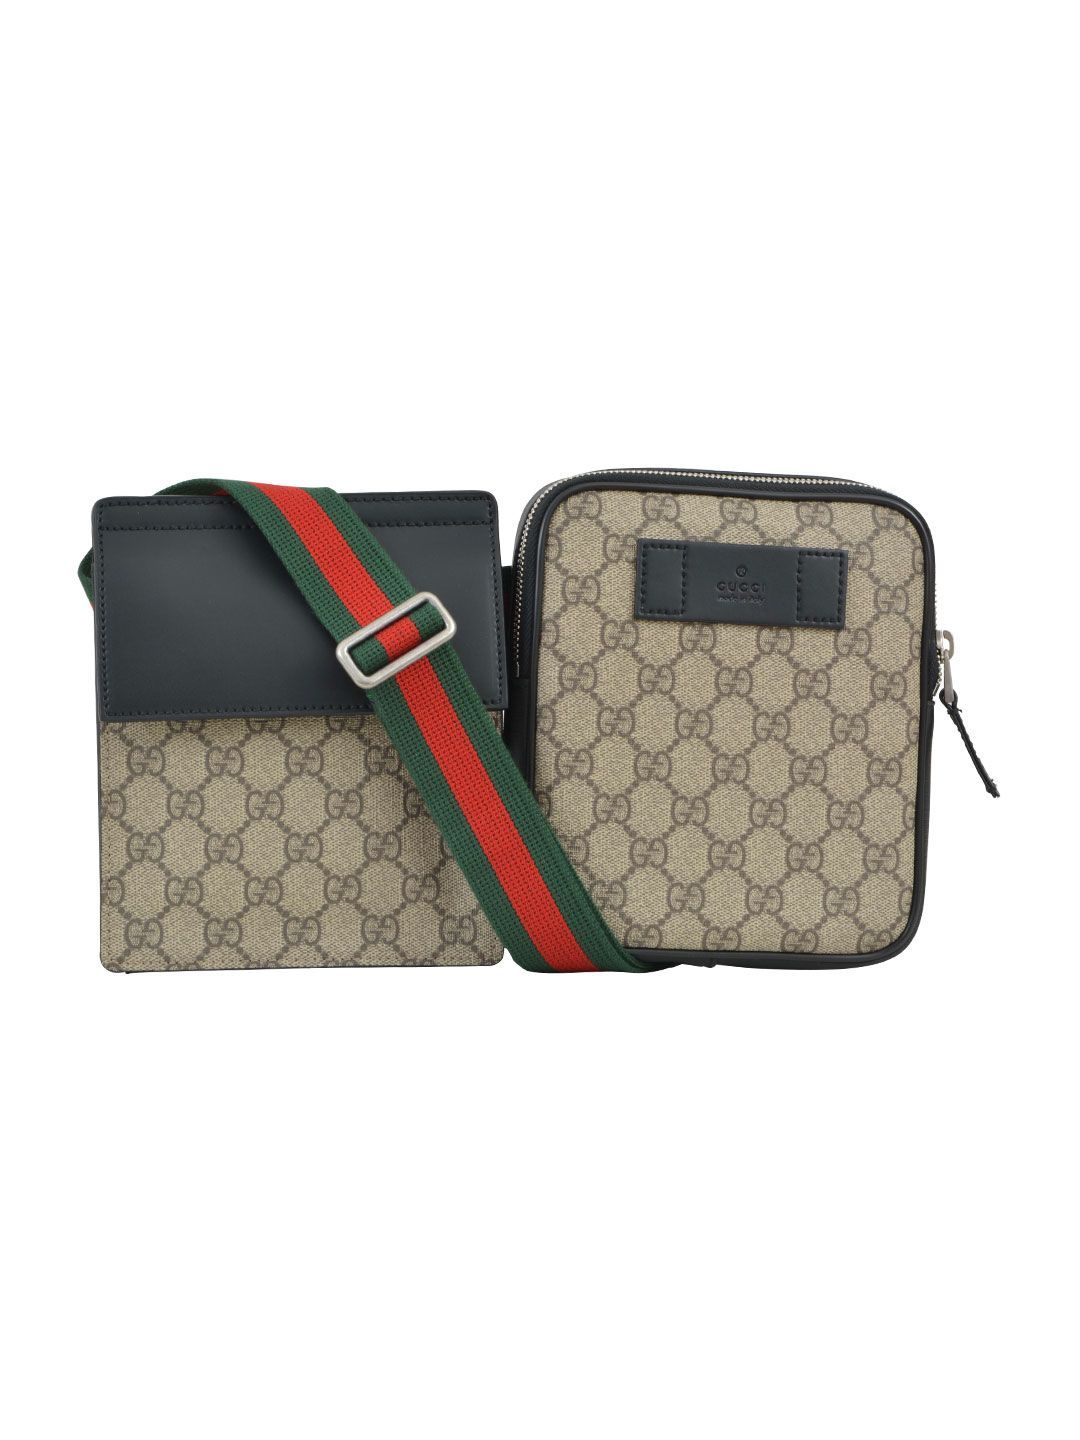 7ed5a1ae79998d GUCCI GG SUPREME BUMBAG. #gucci #bags #leather #lining #accessories  #shoulder bags #nylon #pouch #